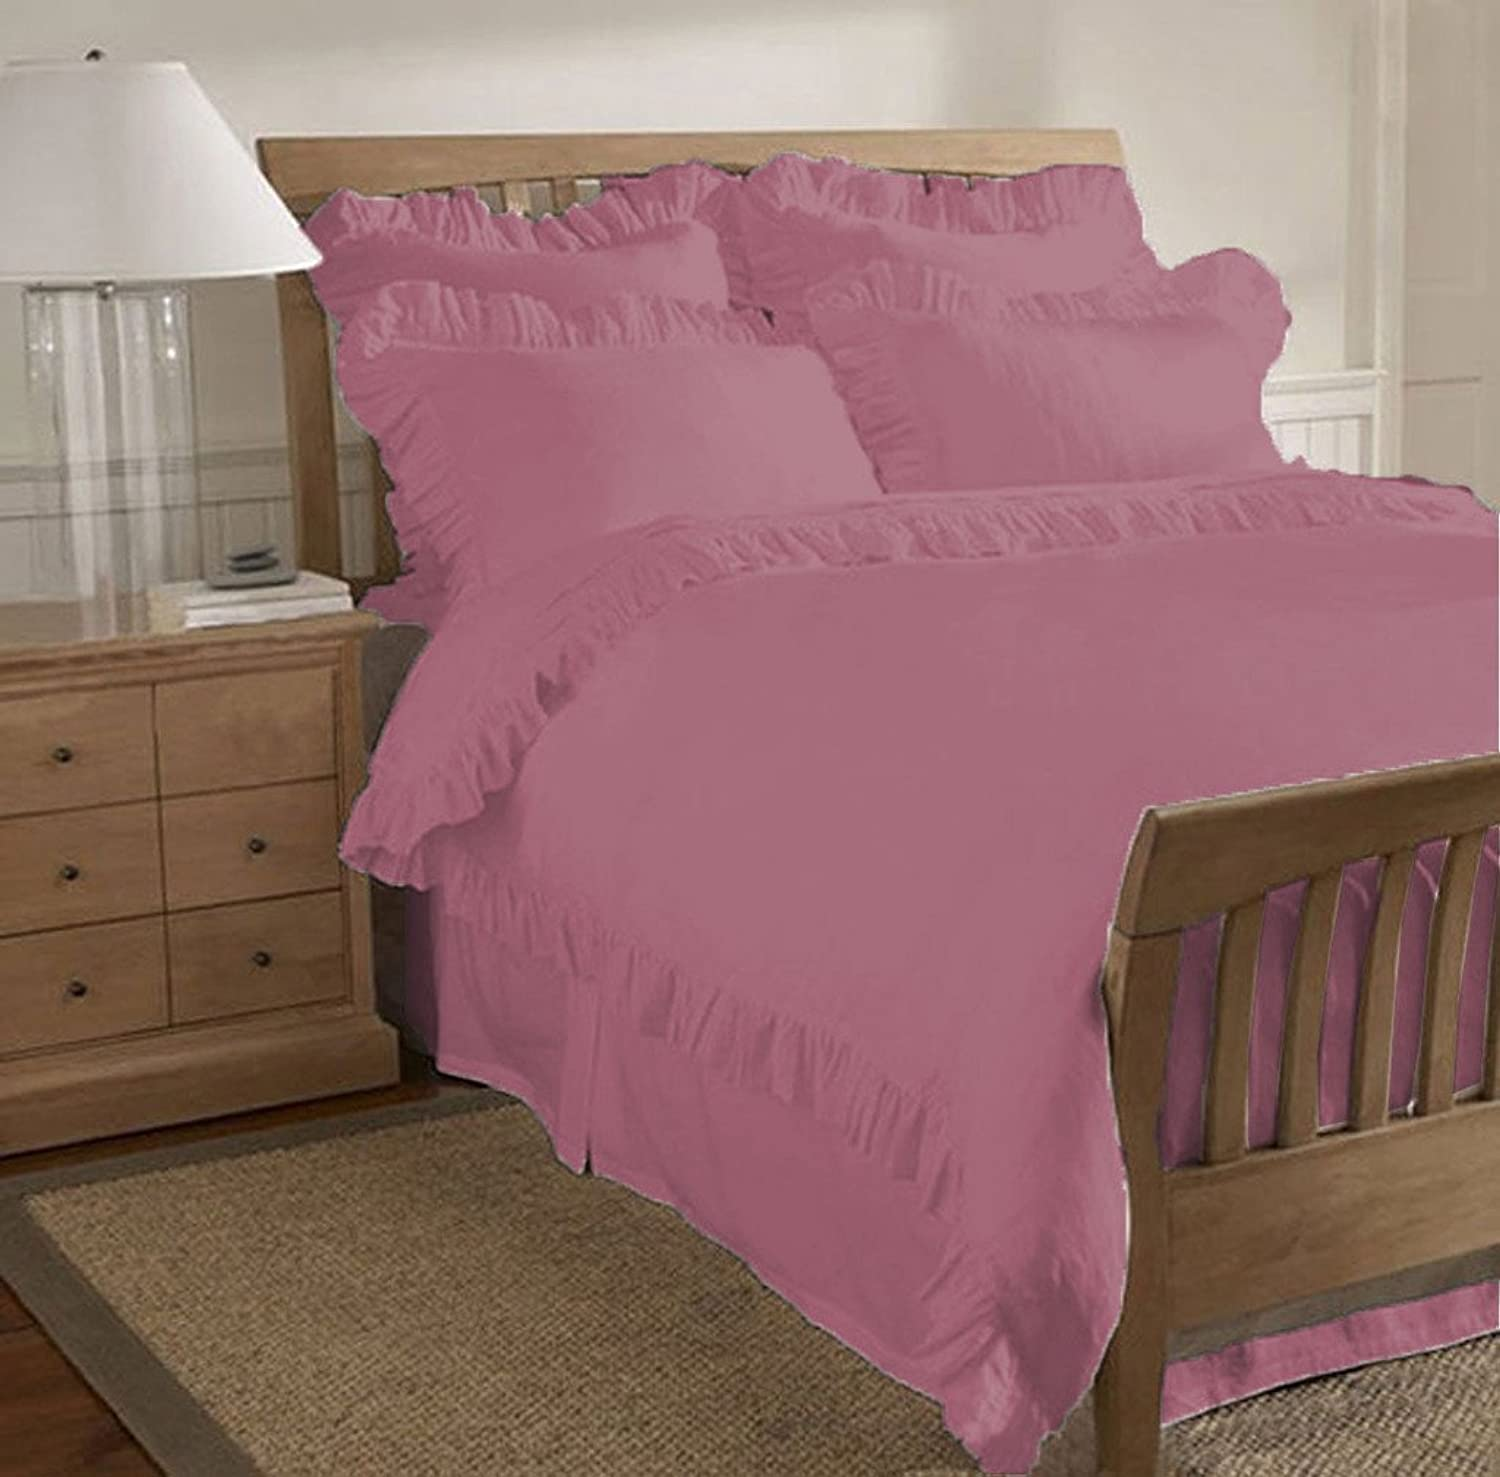 Scalabedding 500TC Coton égypcravaten 1pièce Edge volants traditionnel Housse de couette California King Magenta